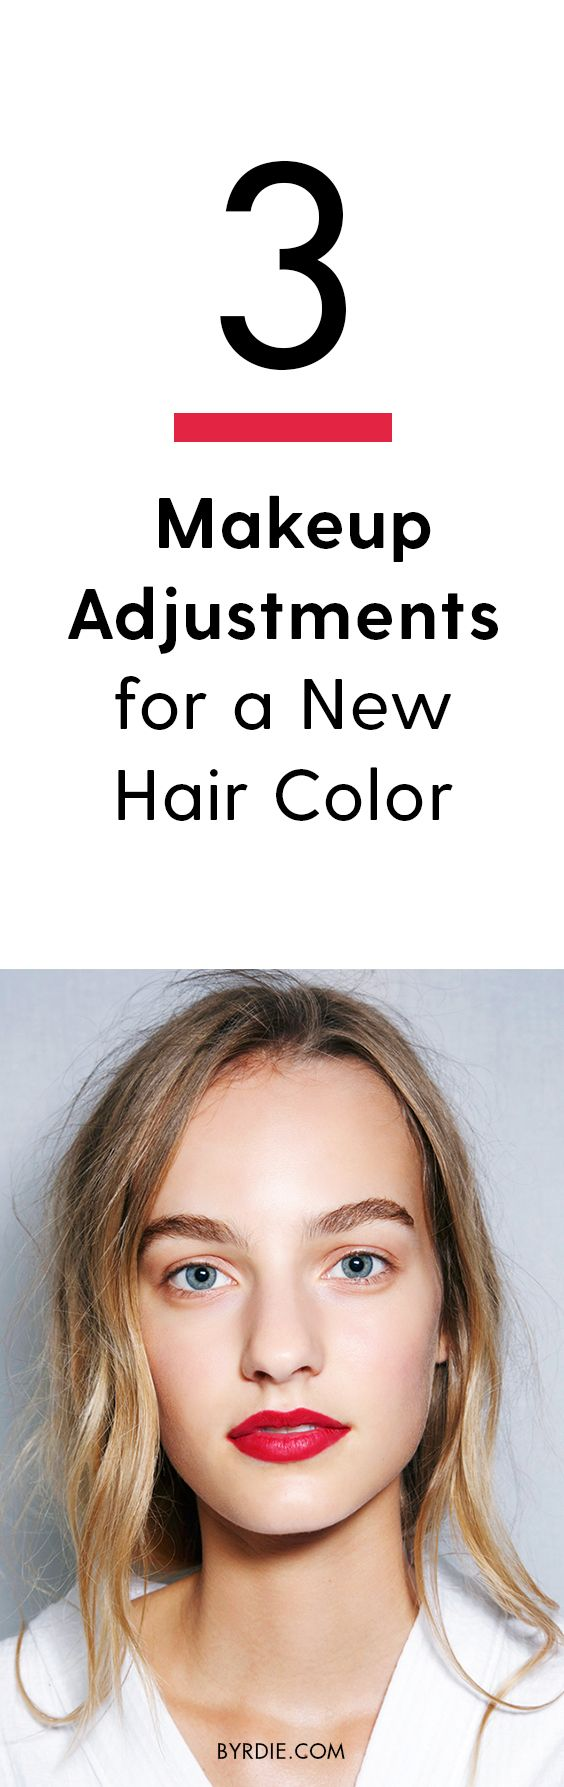 How to adjust your makeup to your new hair color